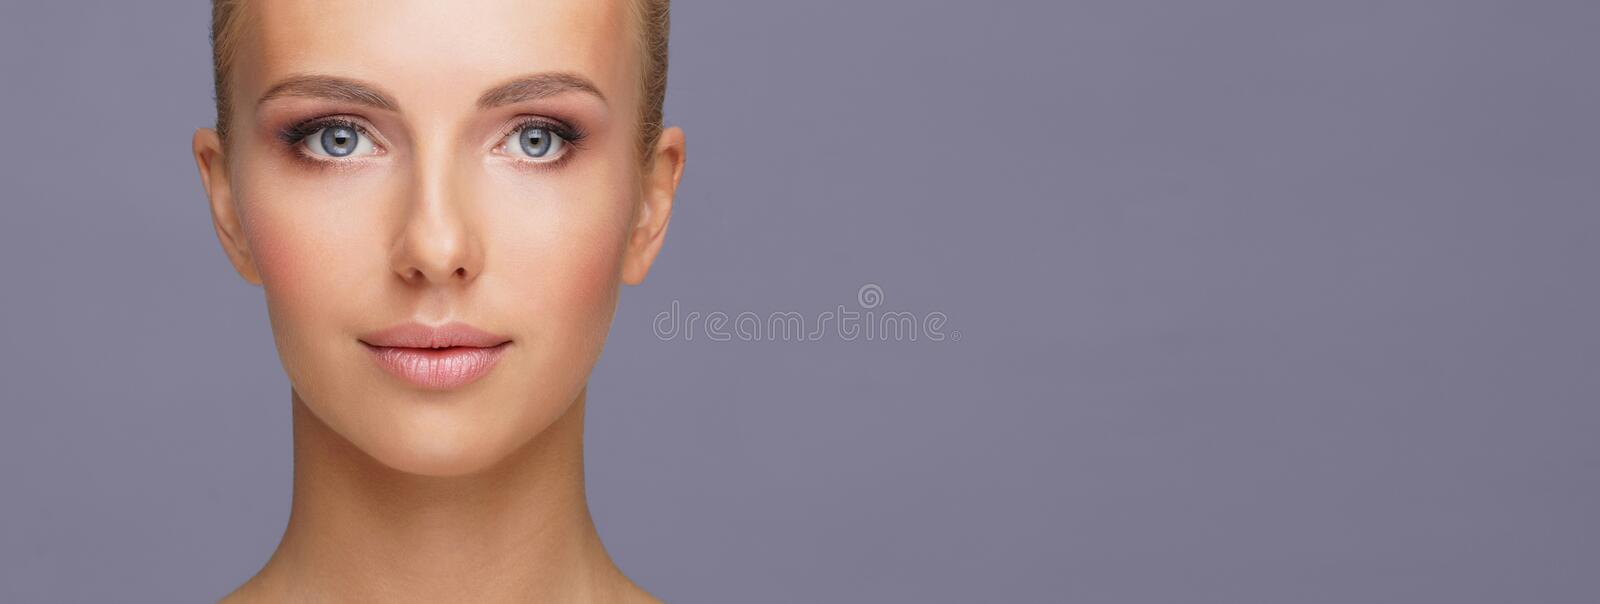 Attractive face of beautiful girl. Close-up portrait of healthy woman. Skin care, cosmetics, makeup, complexion and face royalty free stock images